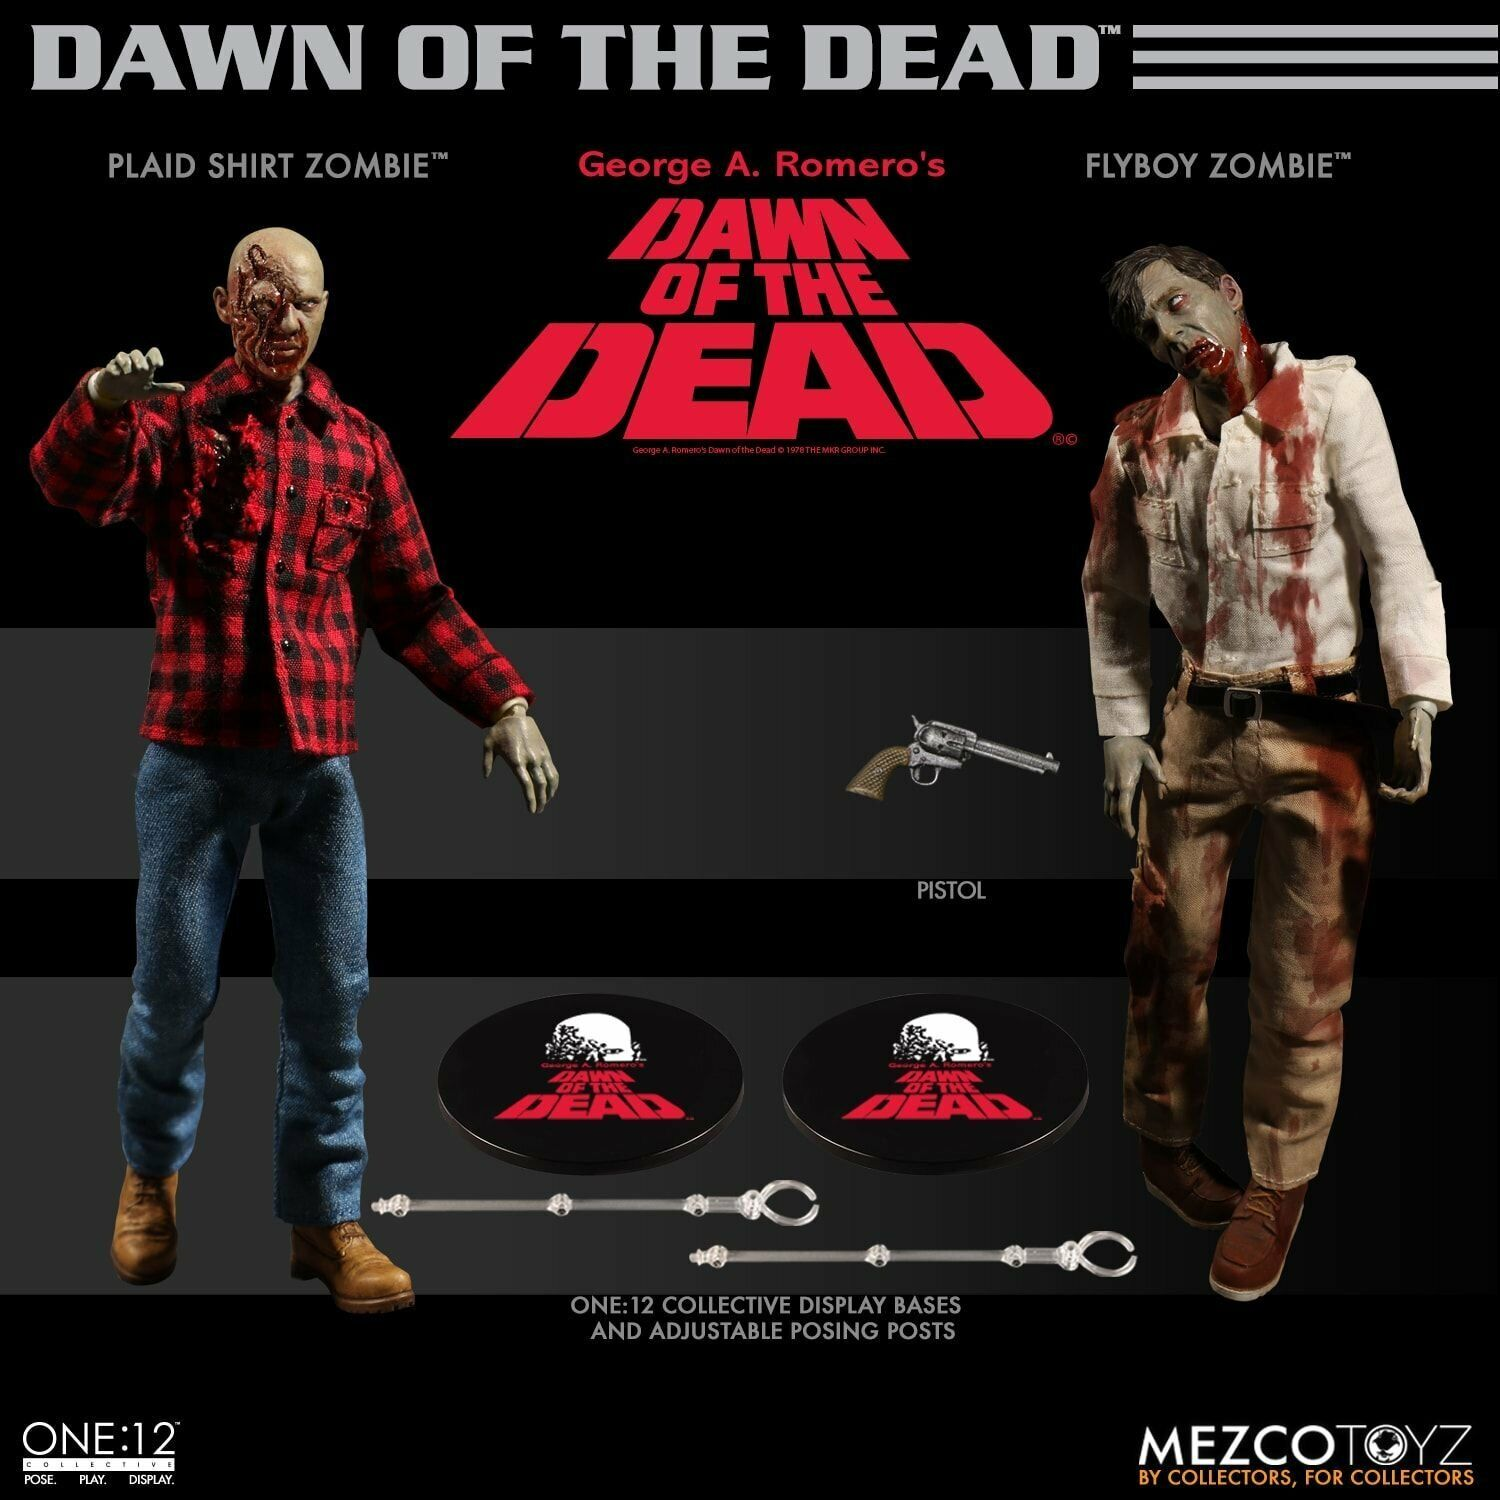 Mezco One 12 Collective - Dawn of the Dead Boxed Set